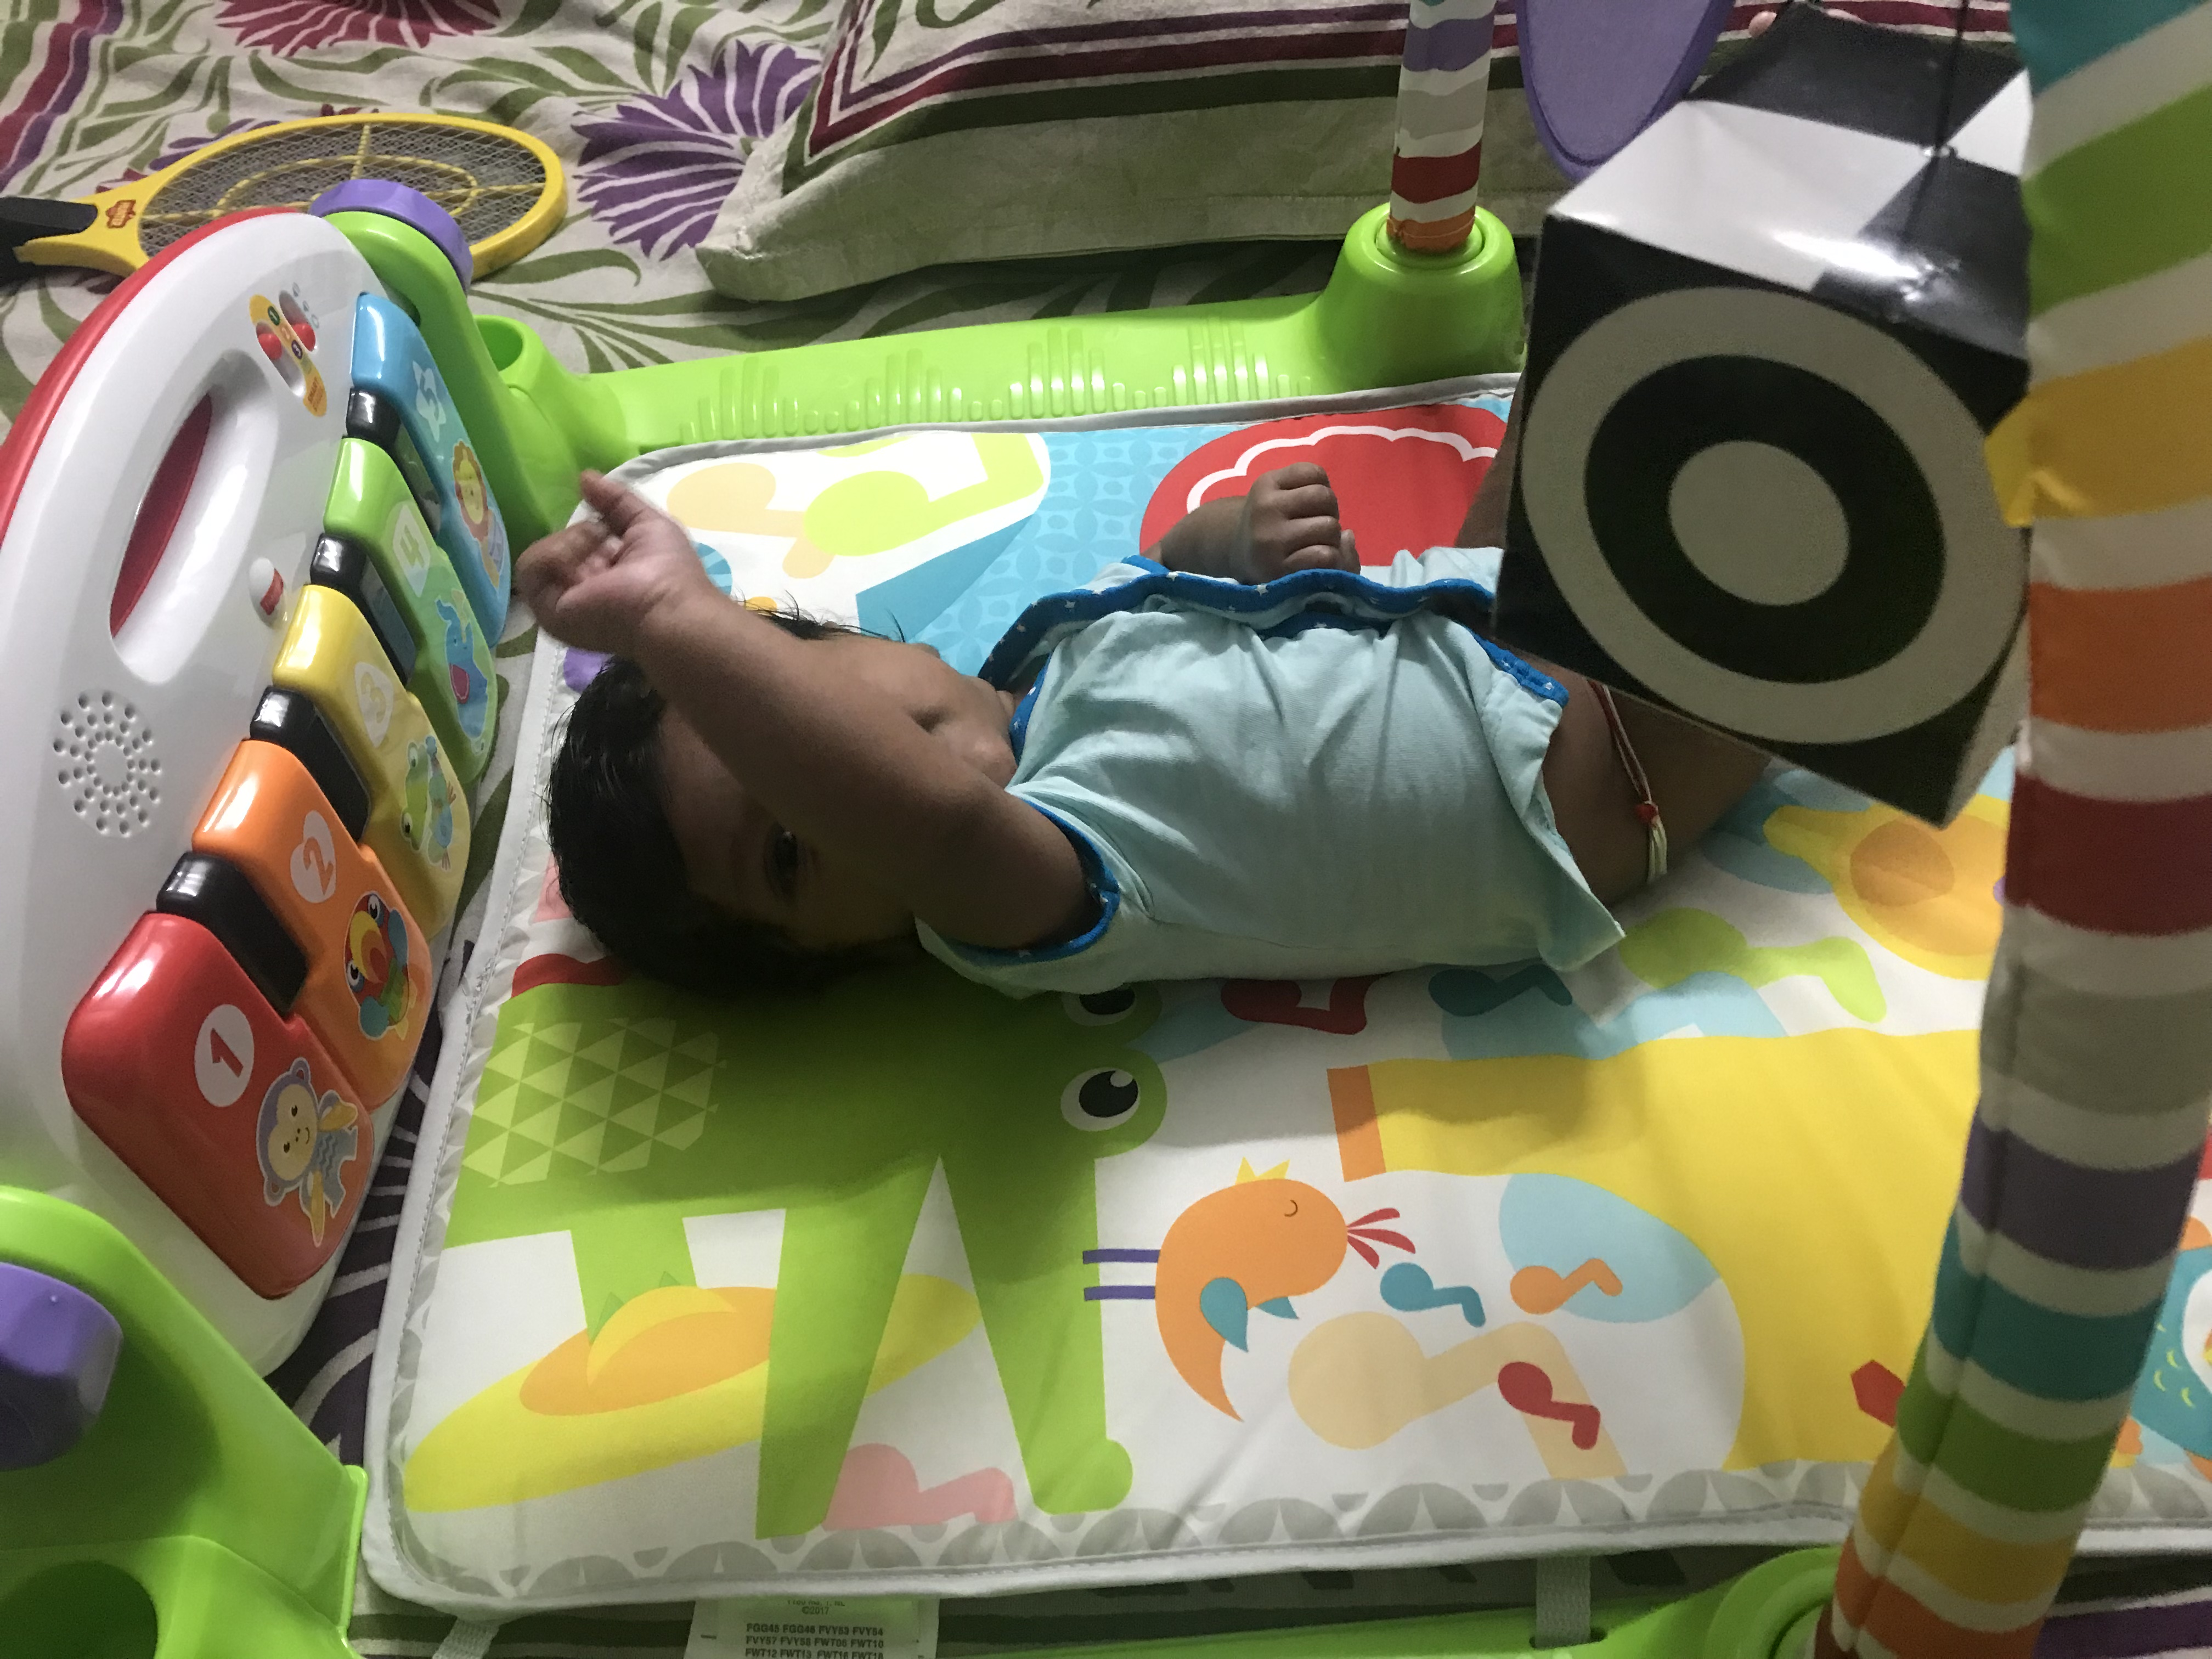 Luvlap Baby Piano Themed Playgym-LuvLap play gym-By dharanirajesh16